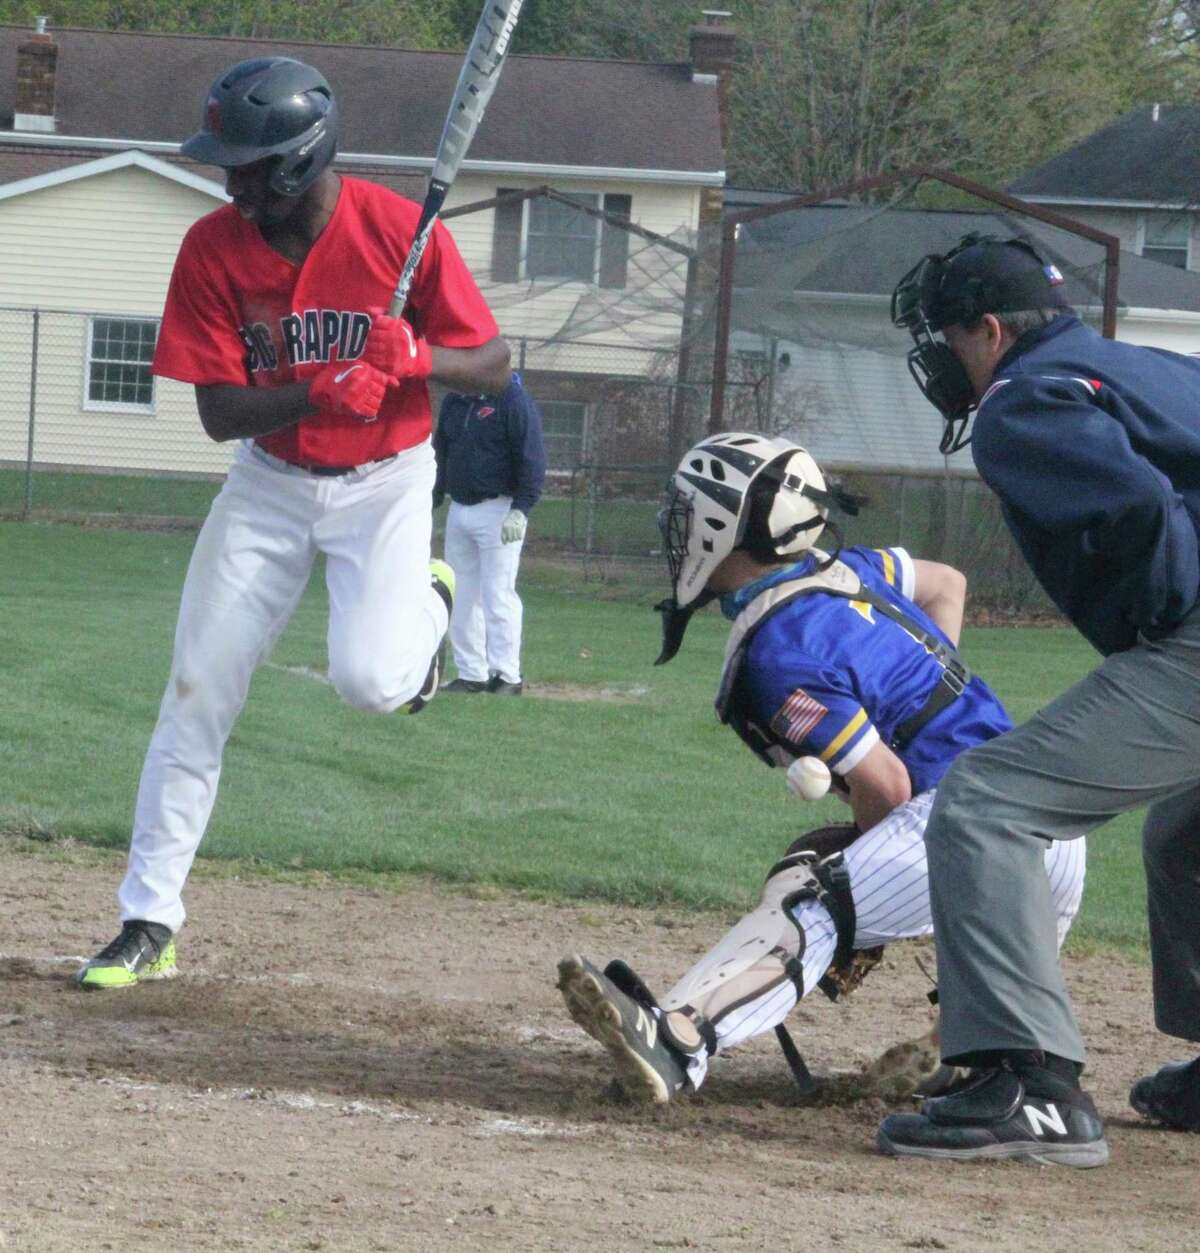 Big Rapids' Jamal Strickland avoids a pitch thrown low and inside against him on Monday at Win Kellum Field against Evart. (Pioneer photo/John Raffel)